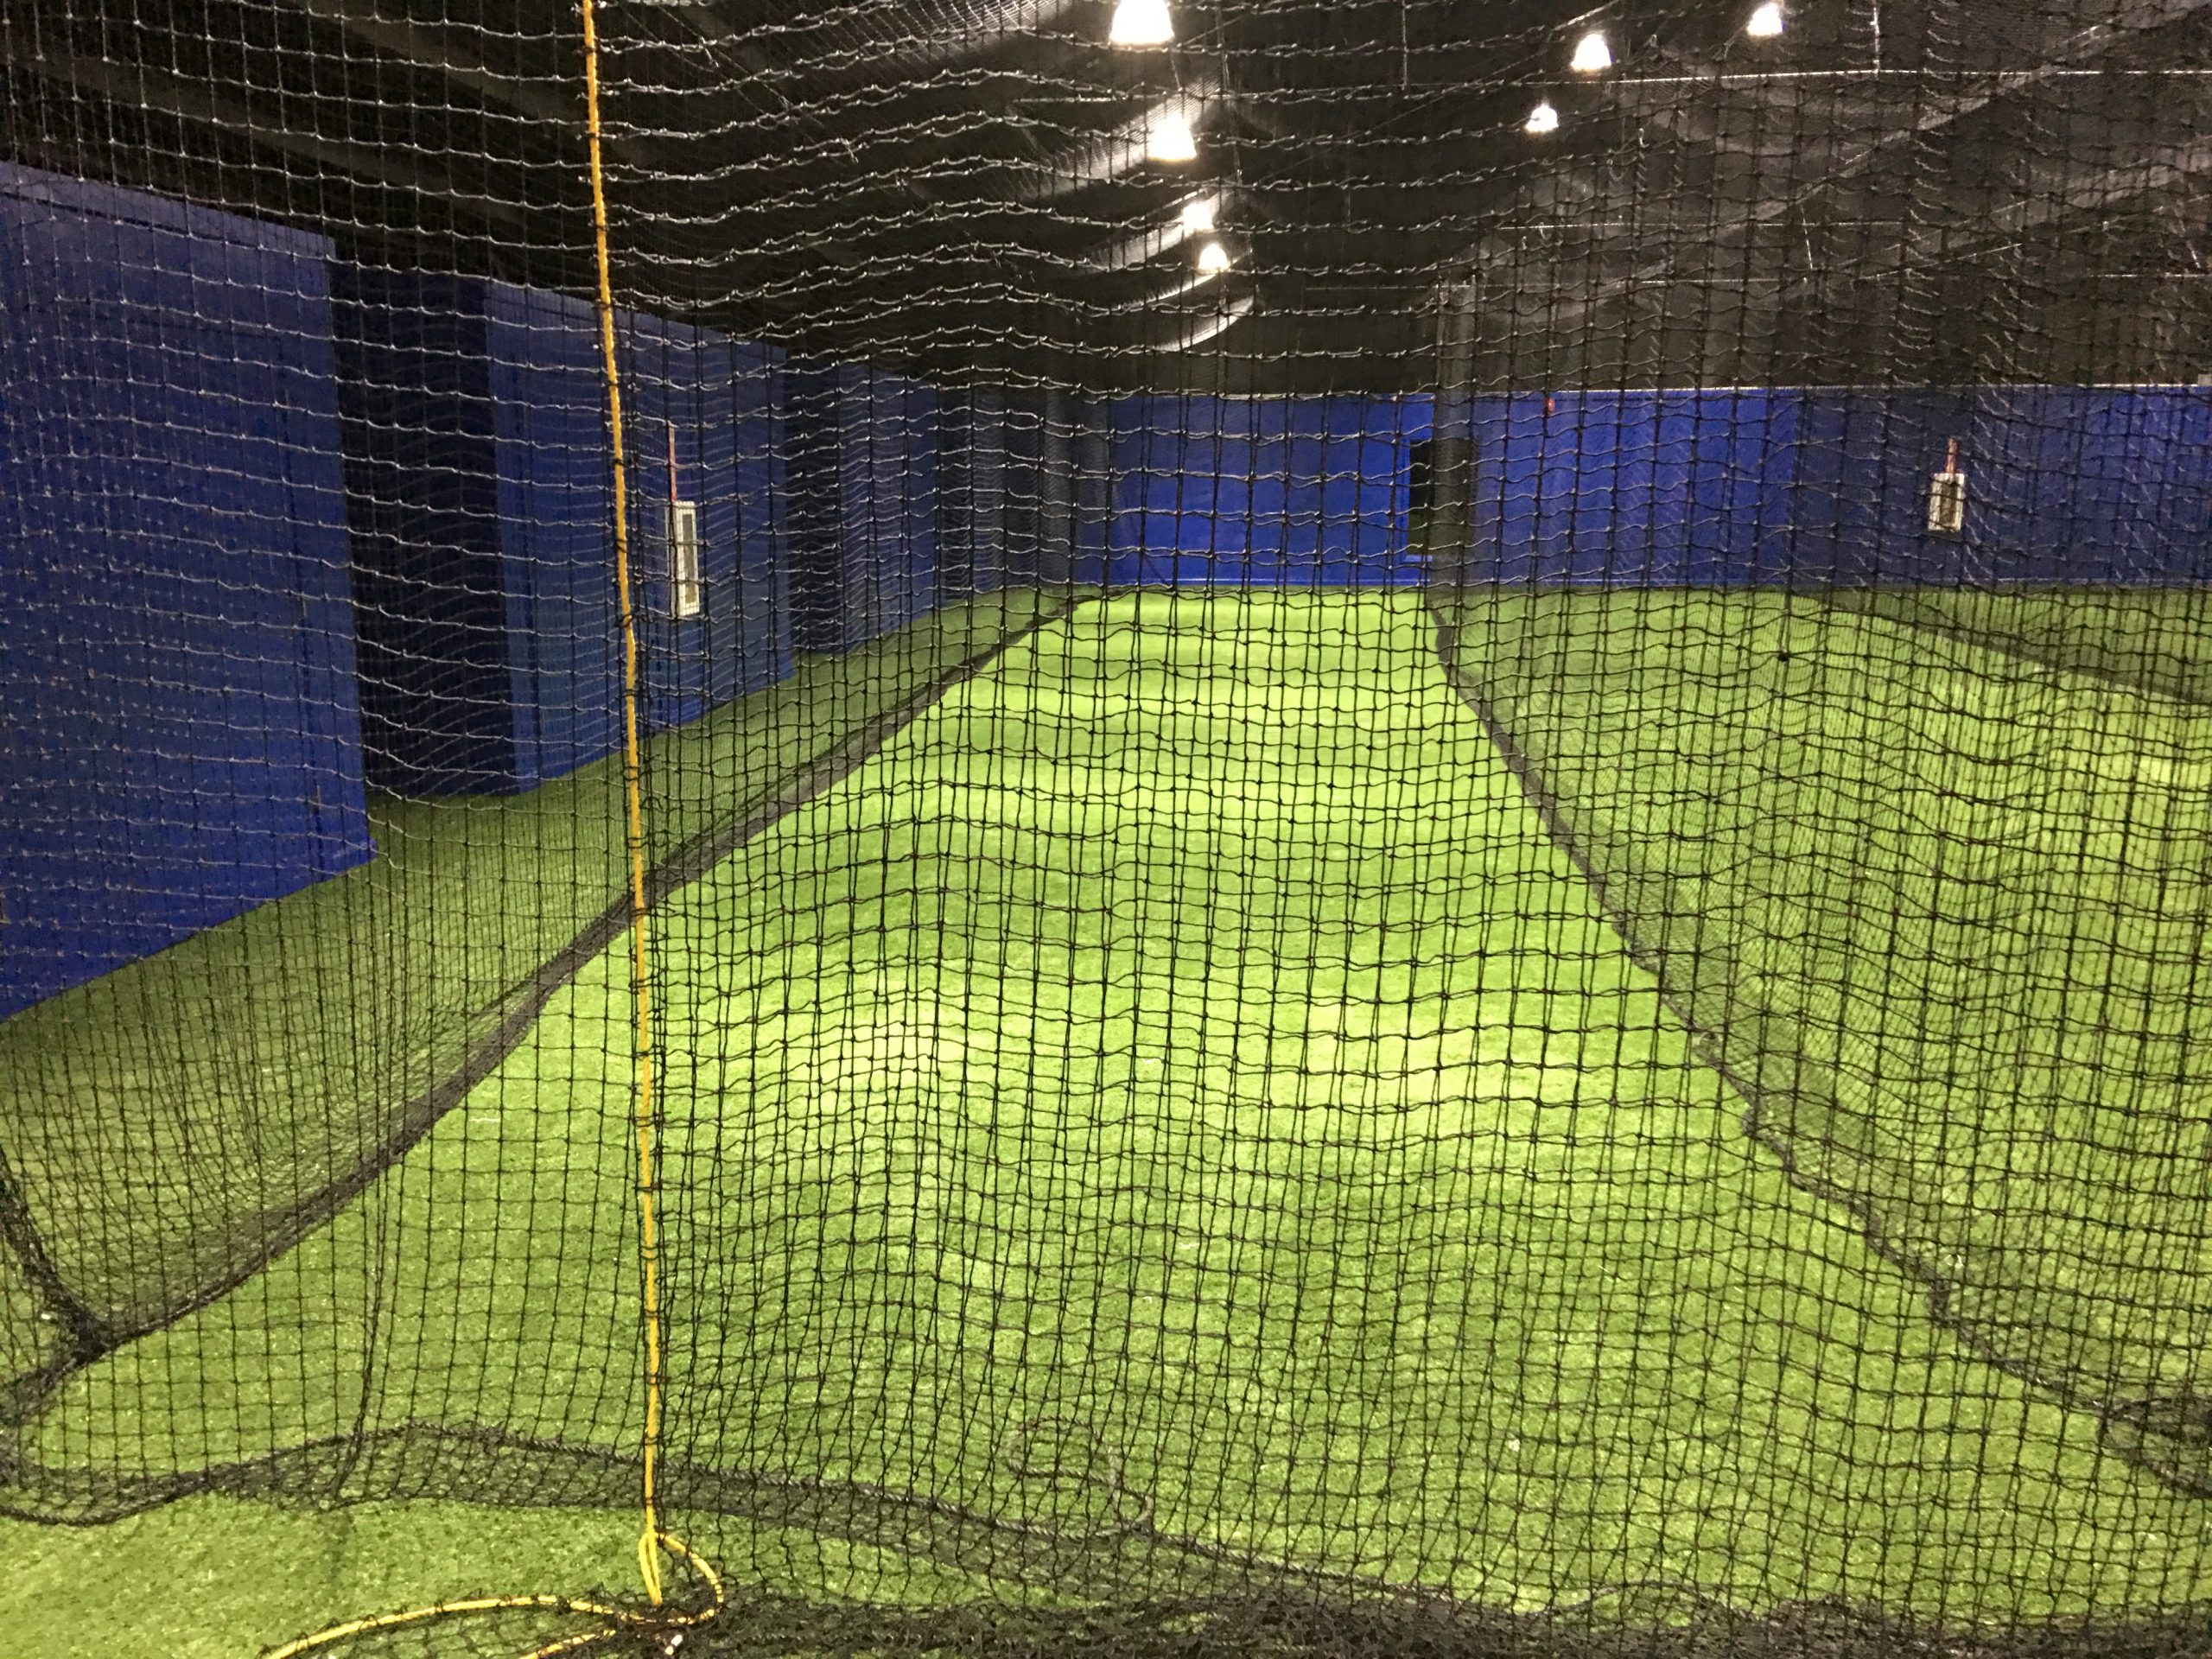 indoor batting cage for artificial turf